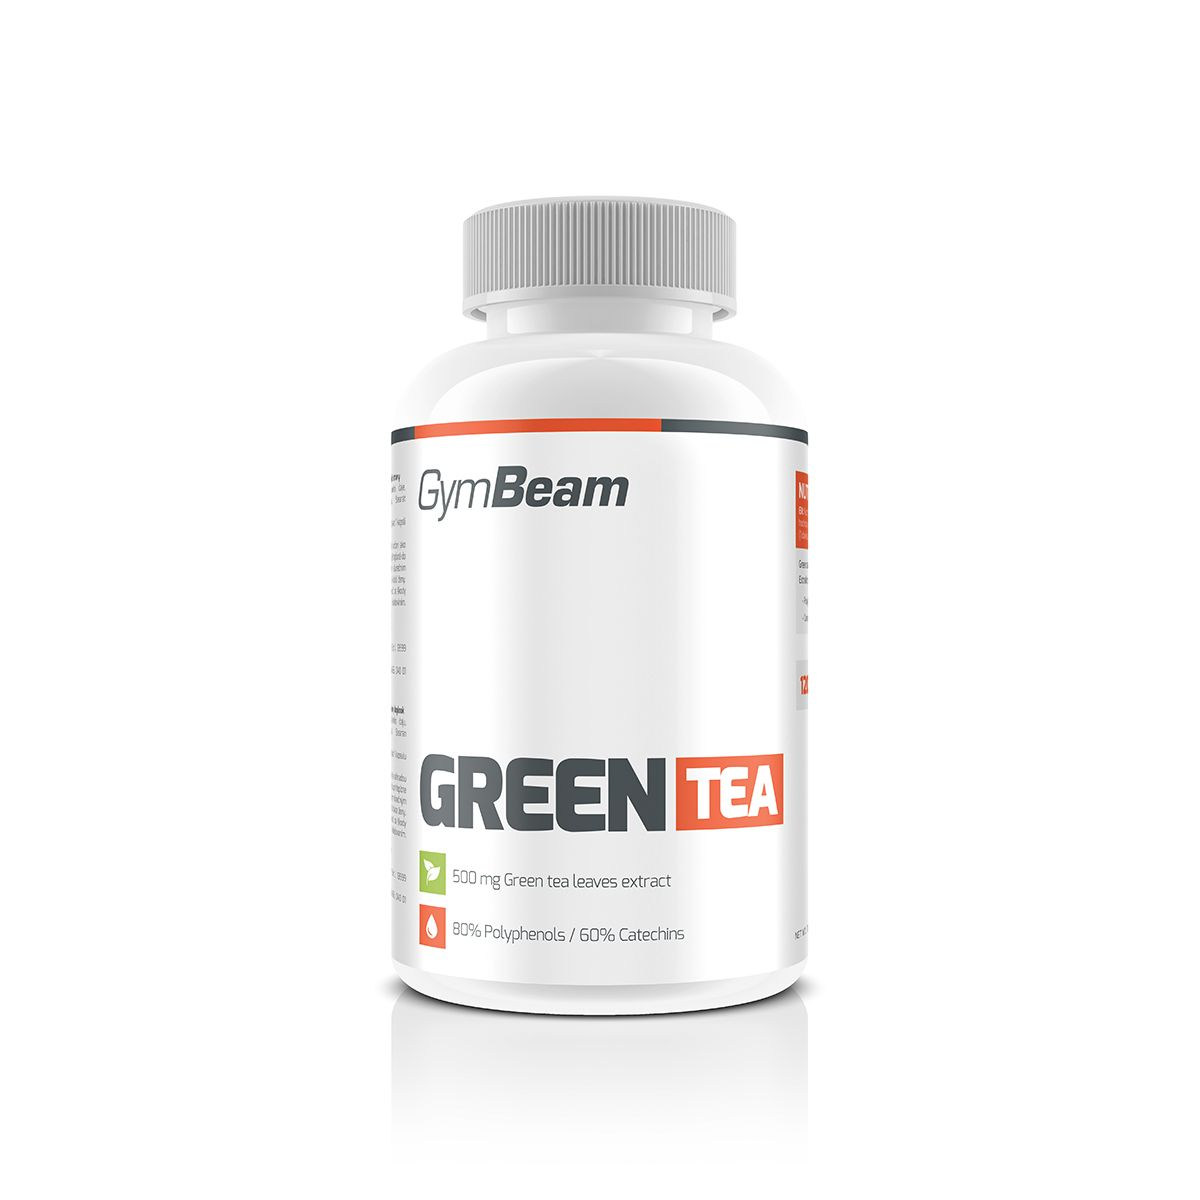 GymBeam Green Tea 60 kaps